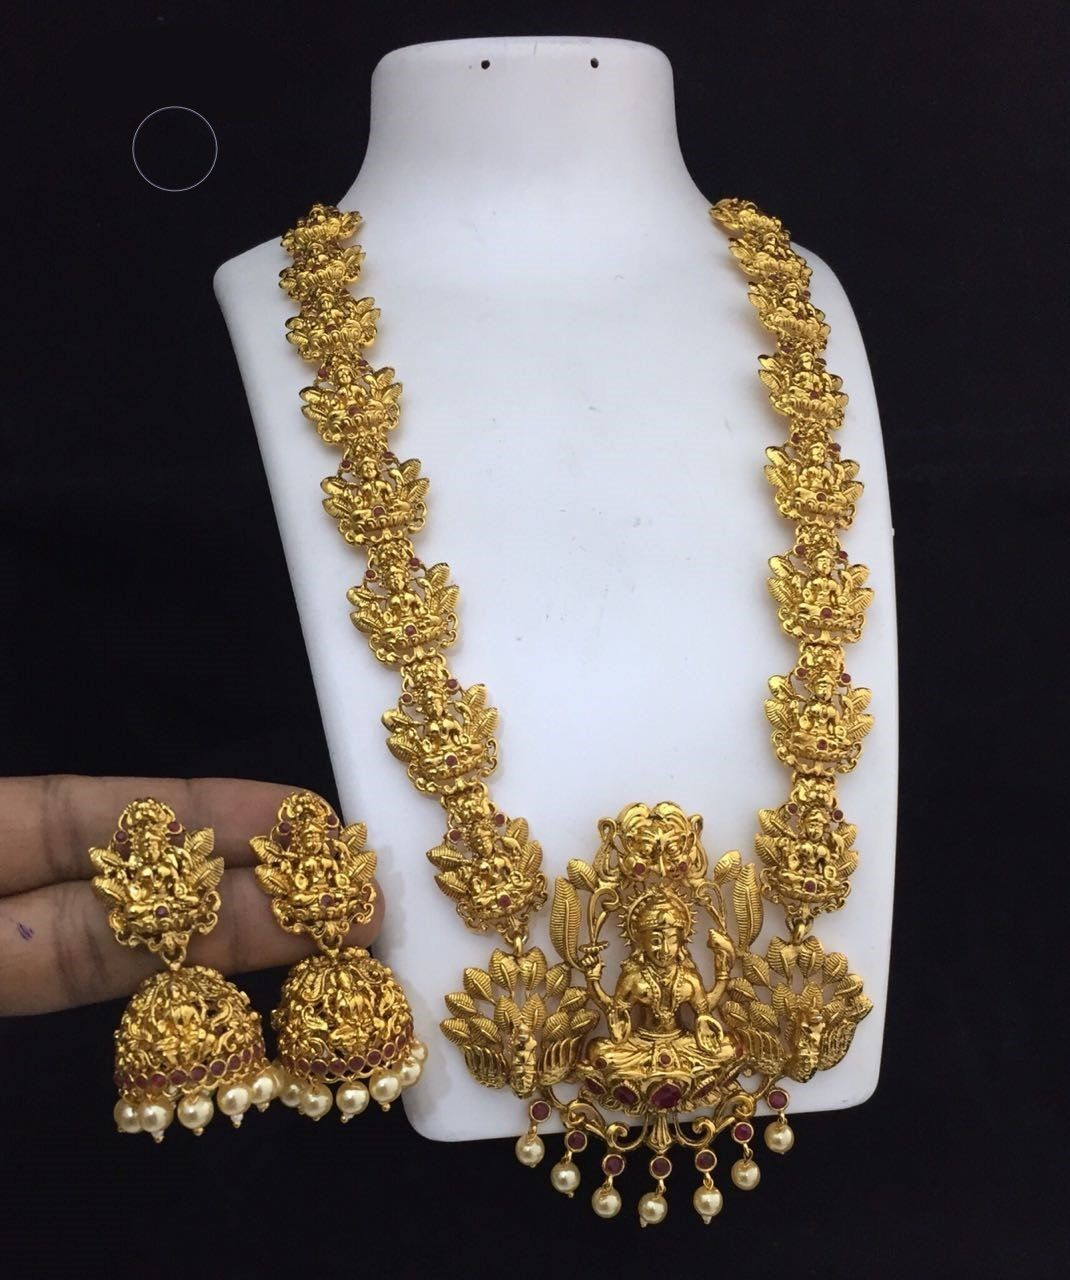 be5918b102 Golden Matte Finished Temple Jewelry with Earrings in 2019 ...